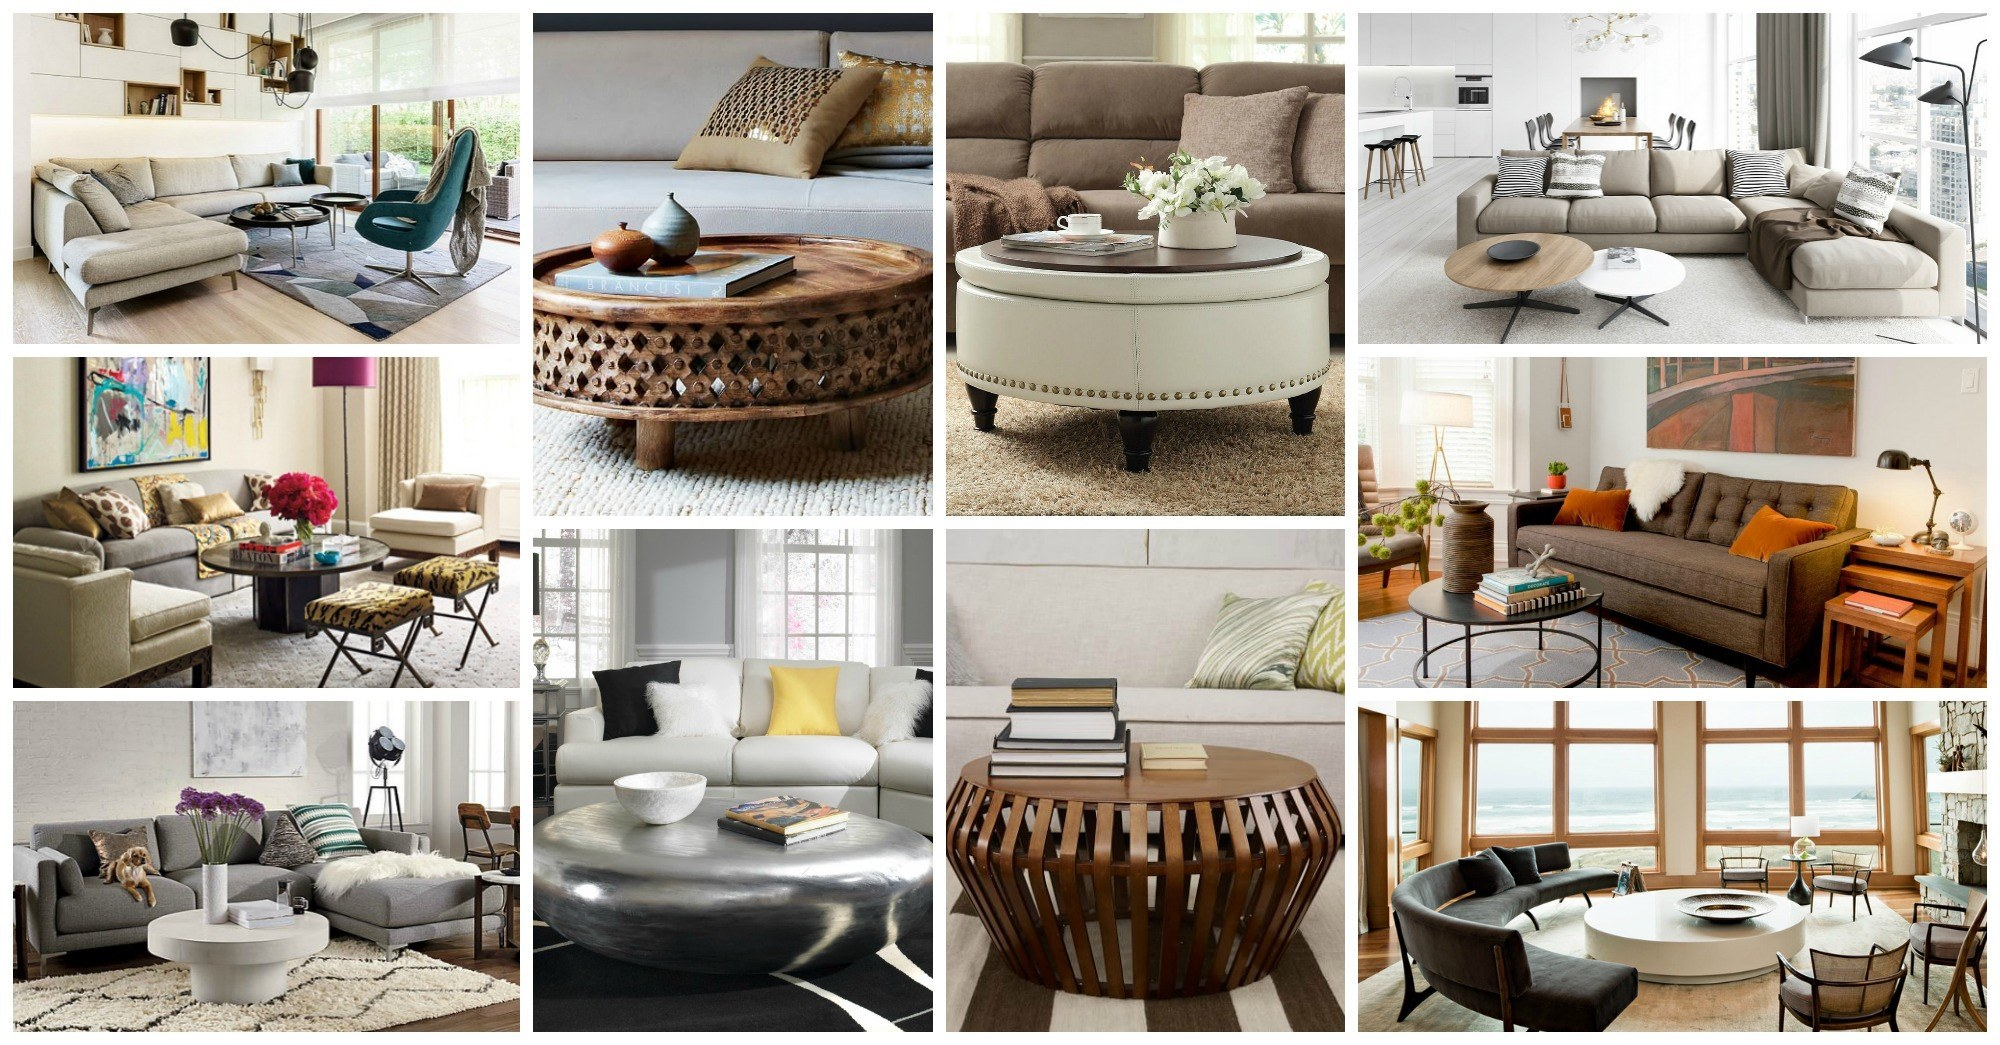 Modern Round Coffee Table Ideas You Are Going to Love